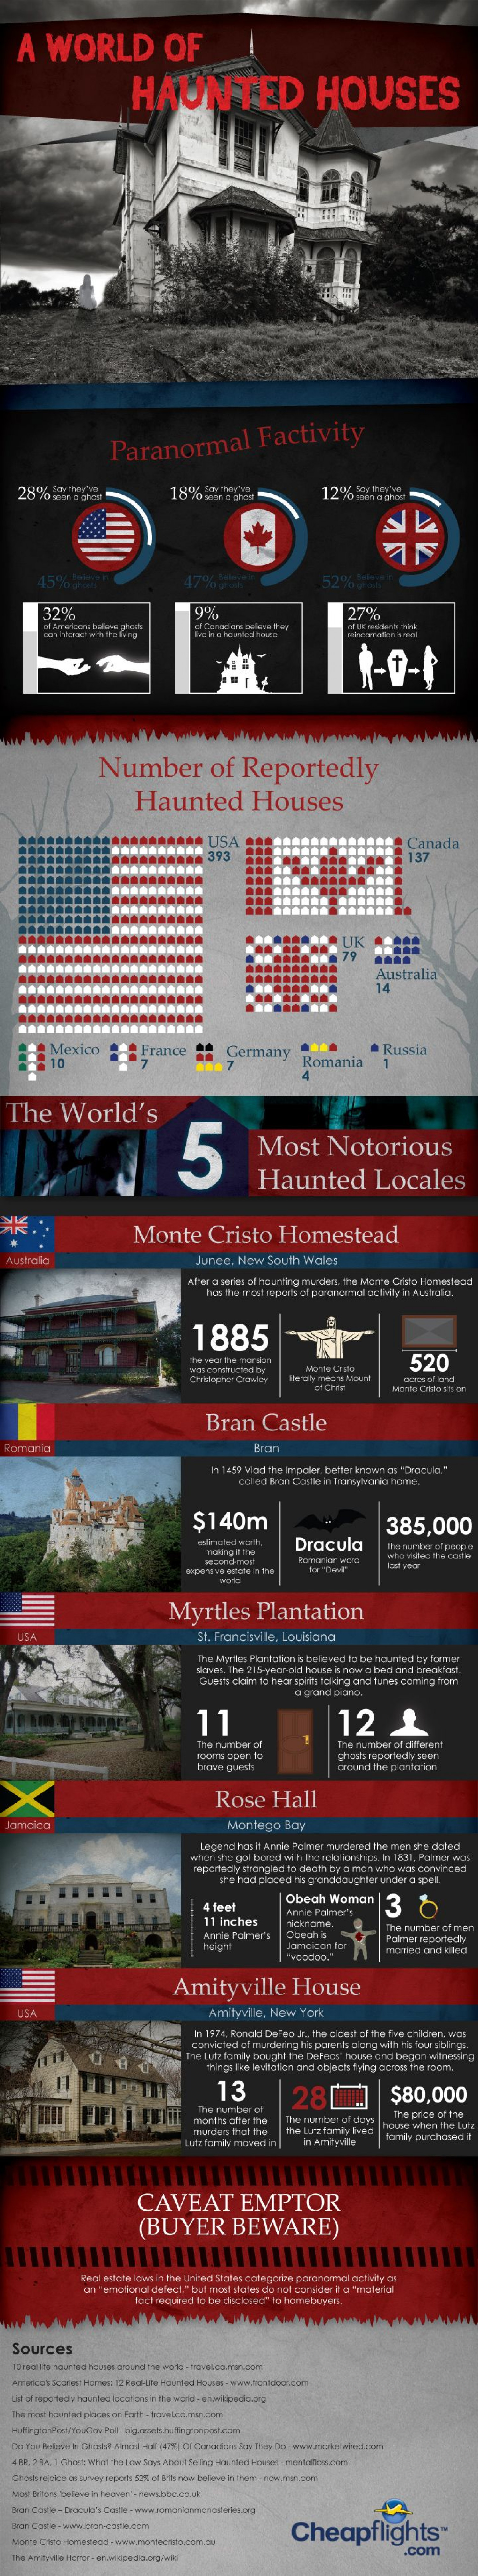 Paranormal Fact-ivity: A World Of Haunted Houses Infographic